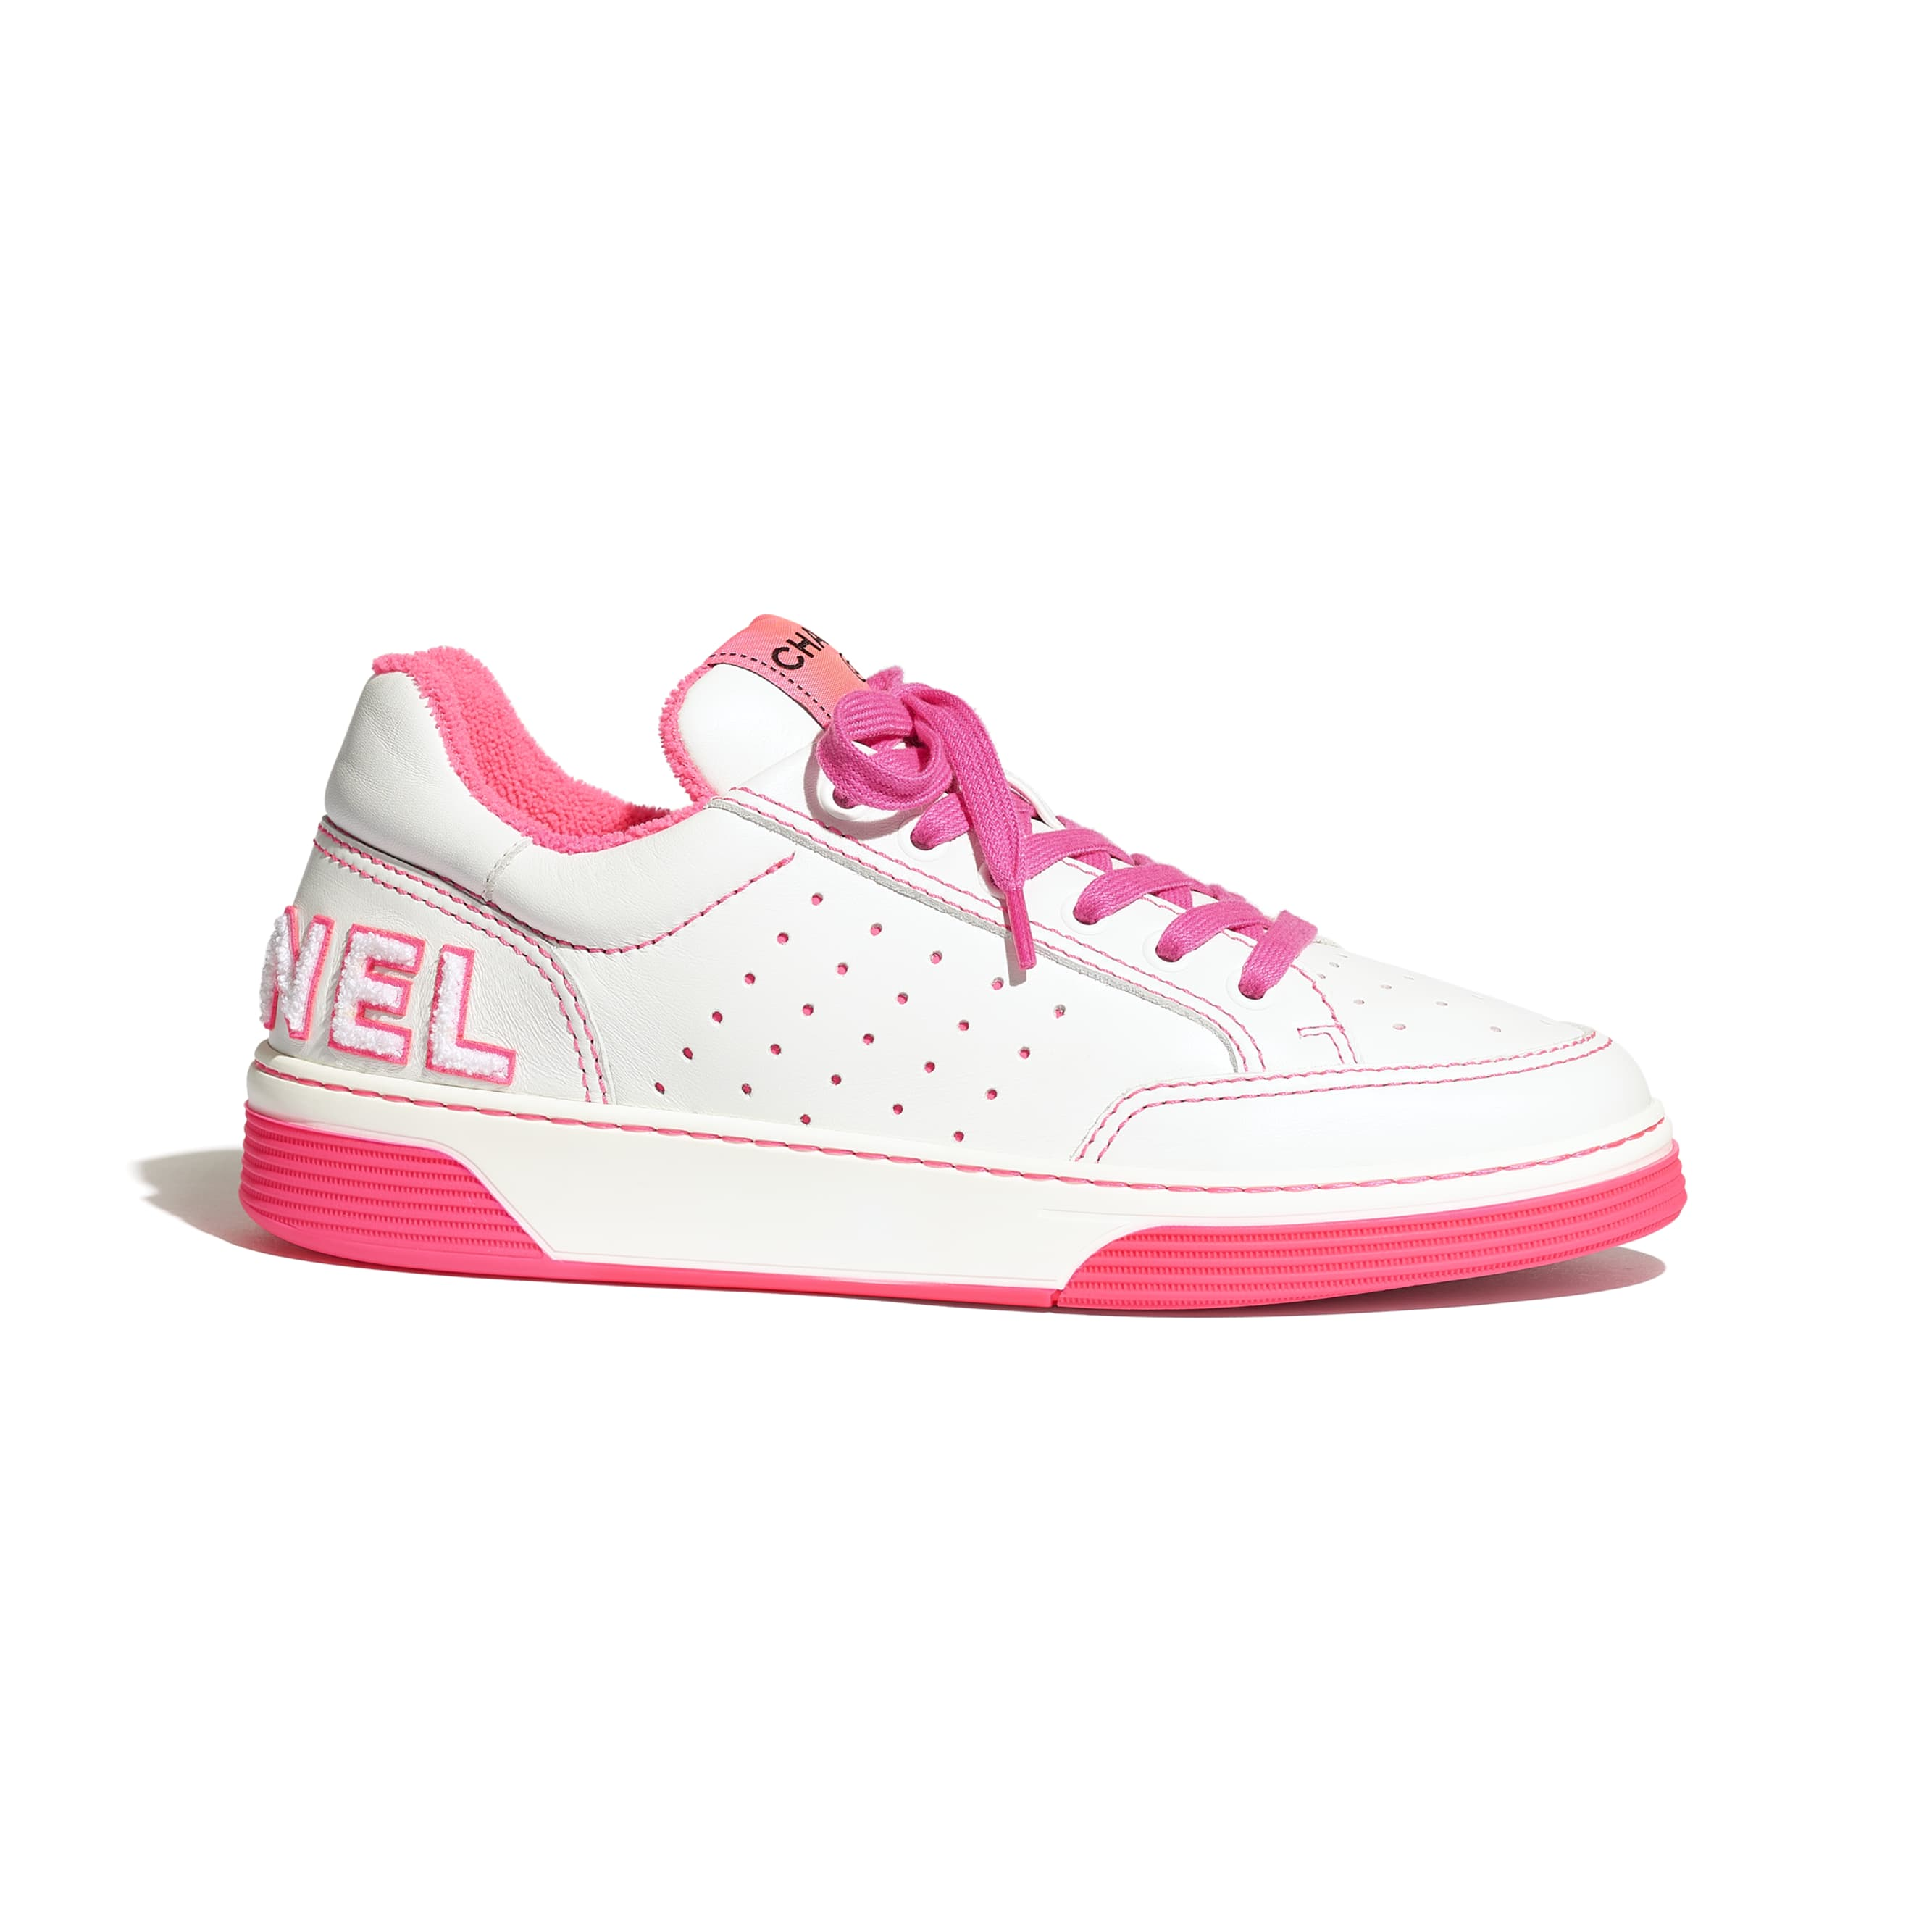 Trainers - White & Fuchsia - Calfskin - Default view - see standard sized version